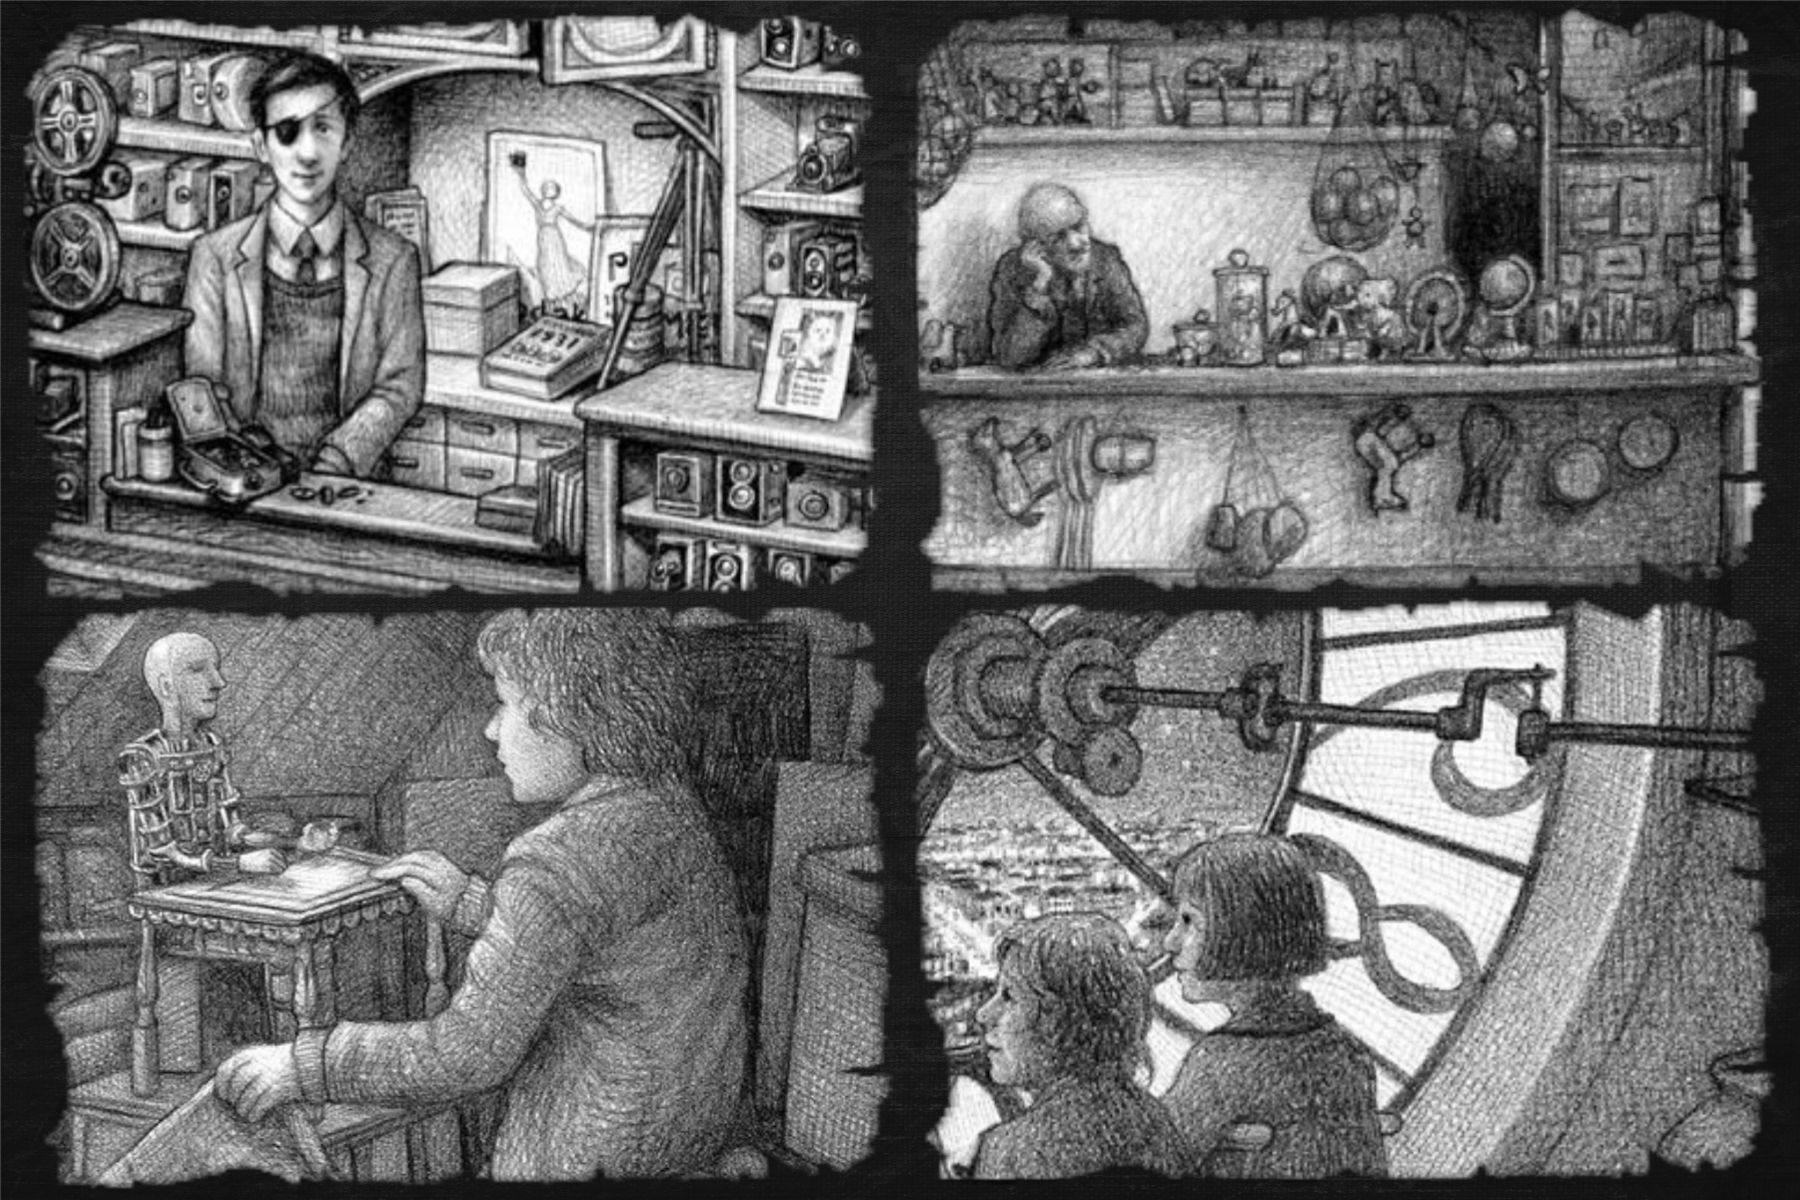 Hugo Cabret Libro Goodreads The Invention Of Hugo Cabret By Brian Selznick